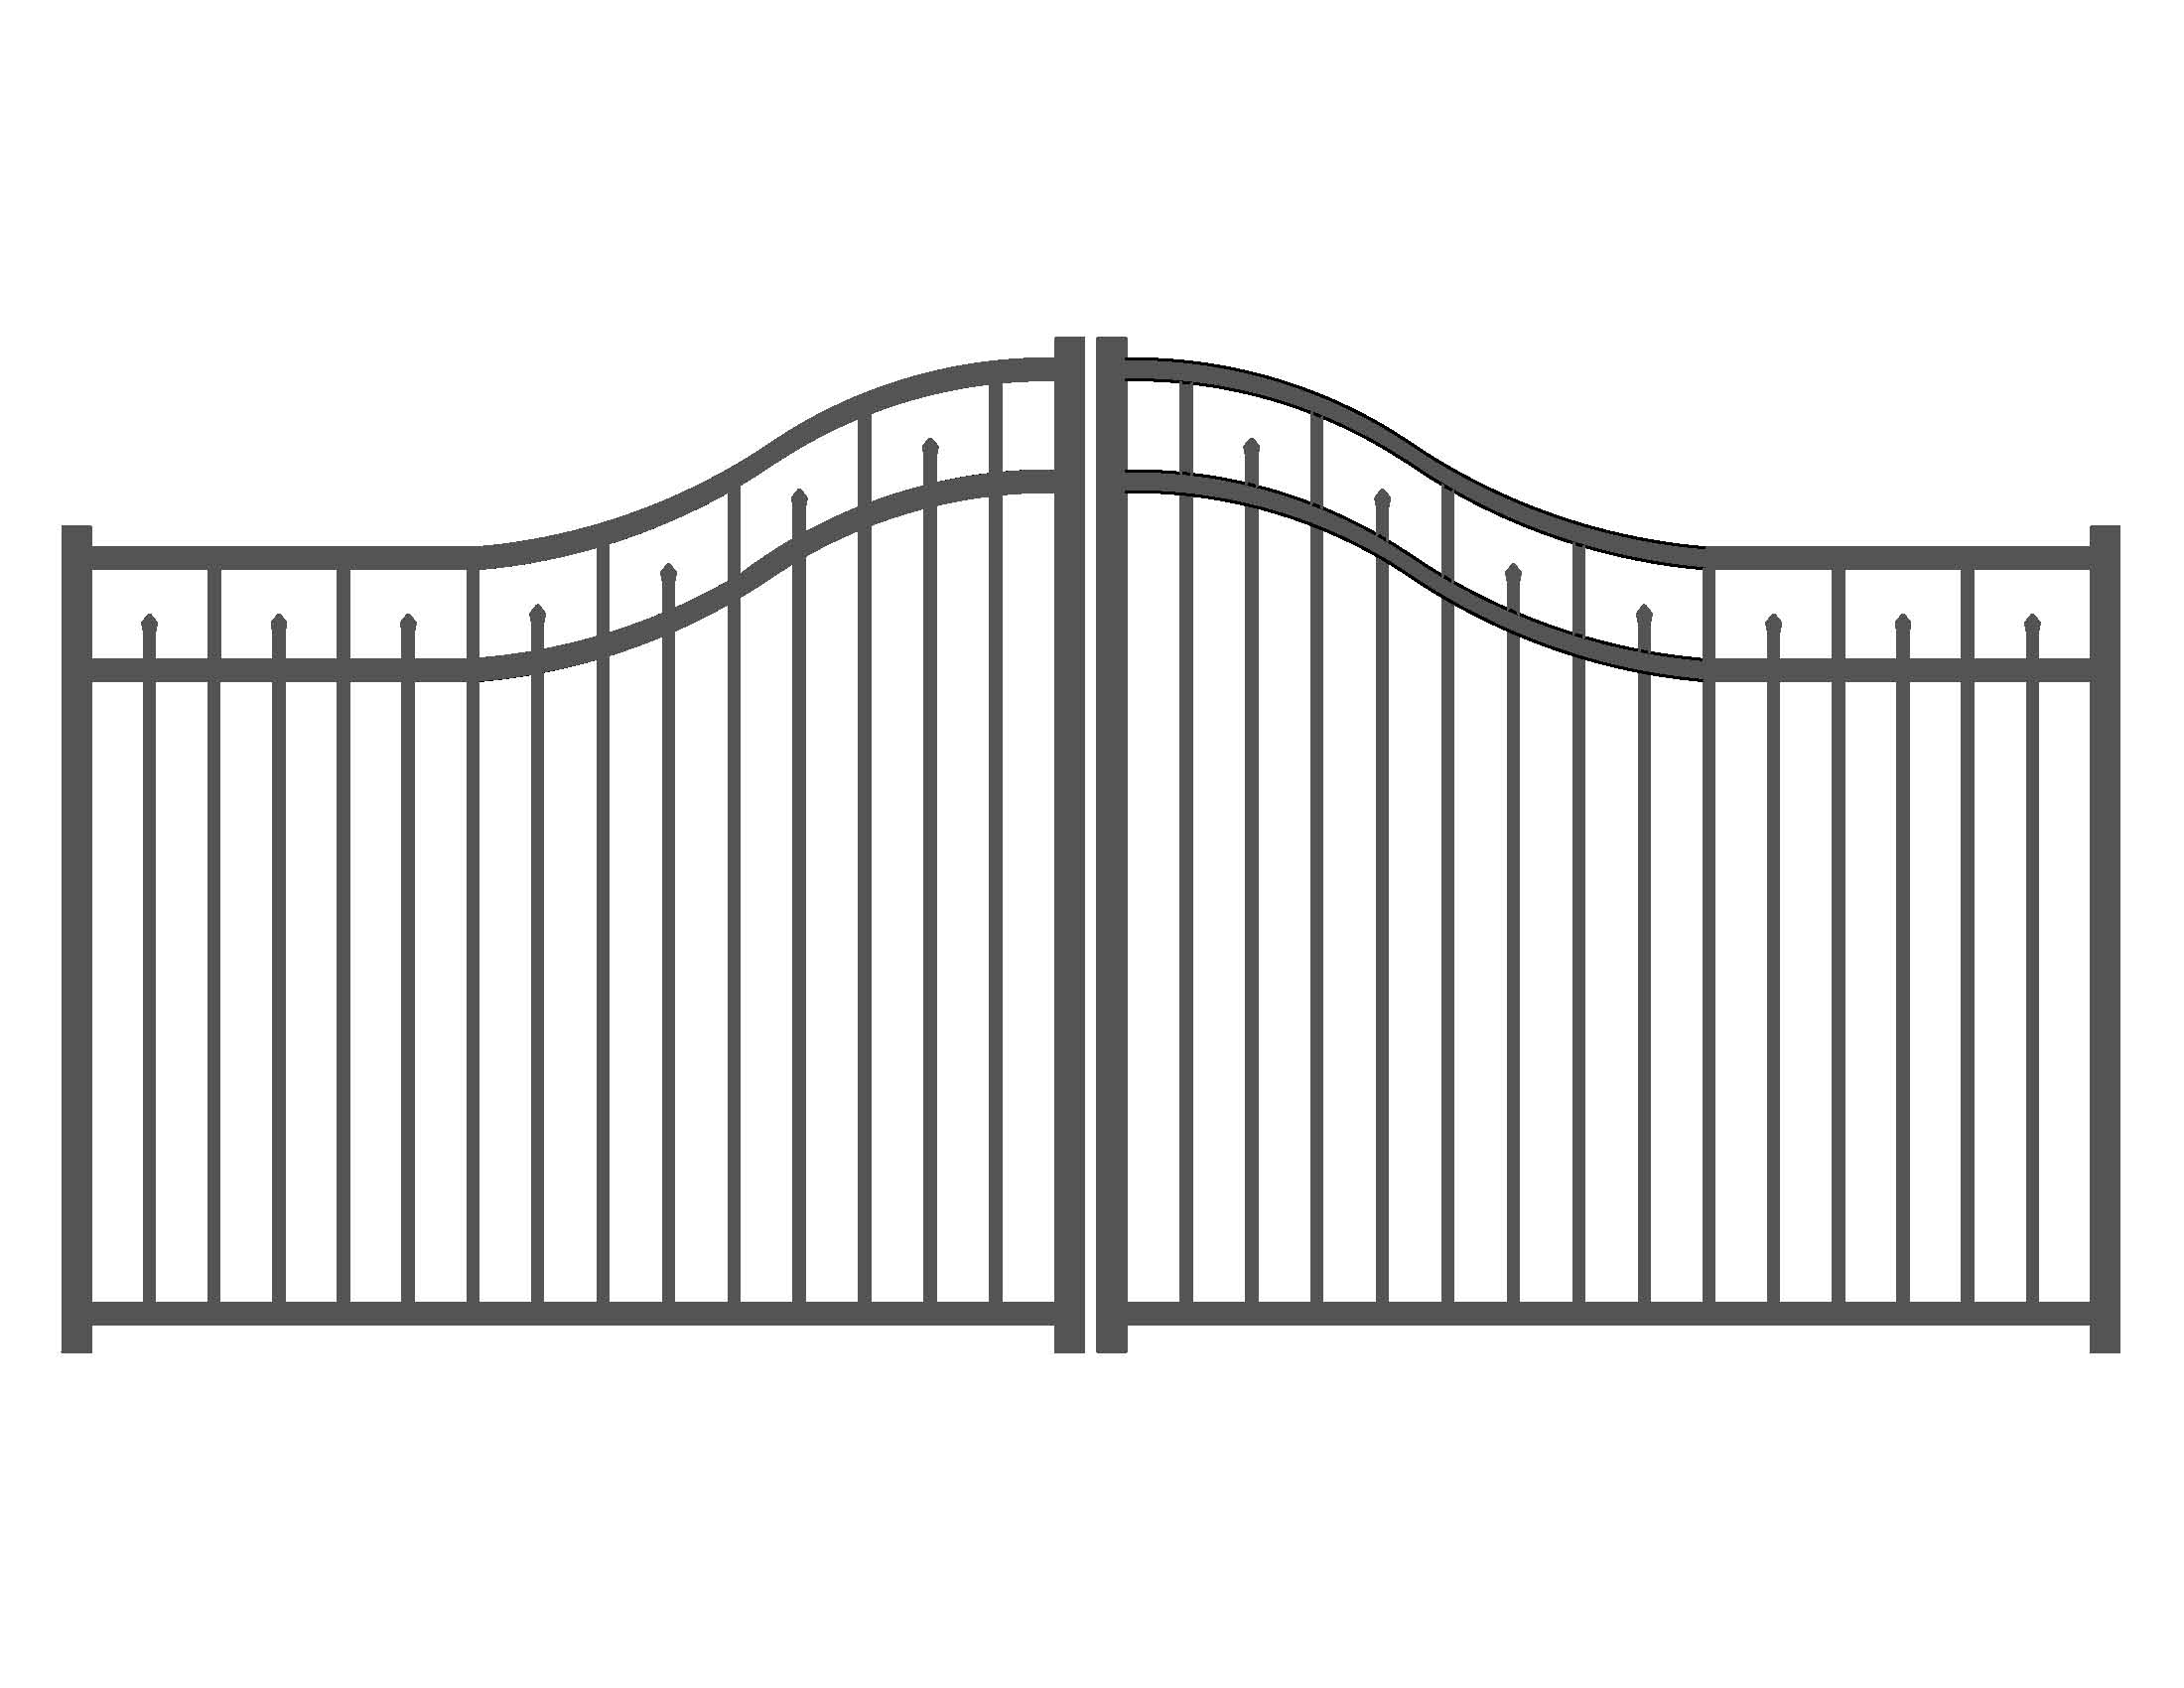 Fence gate clipart suggest